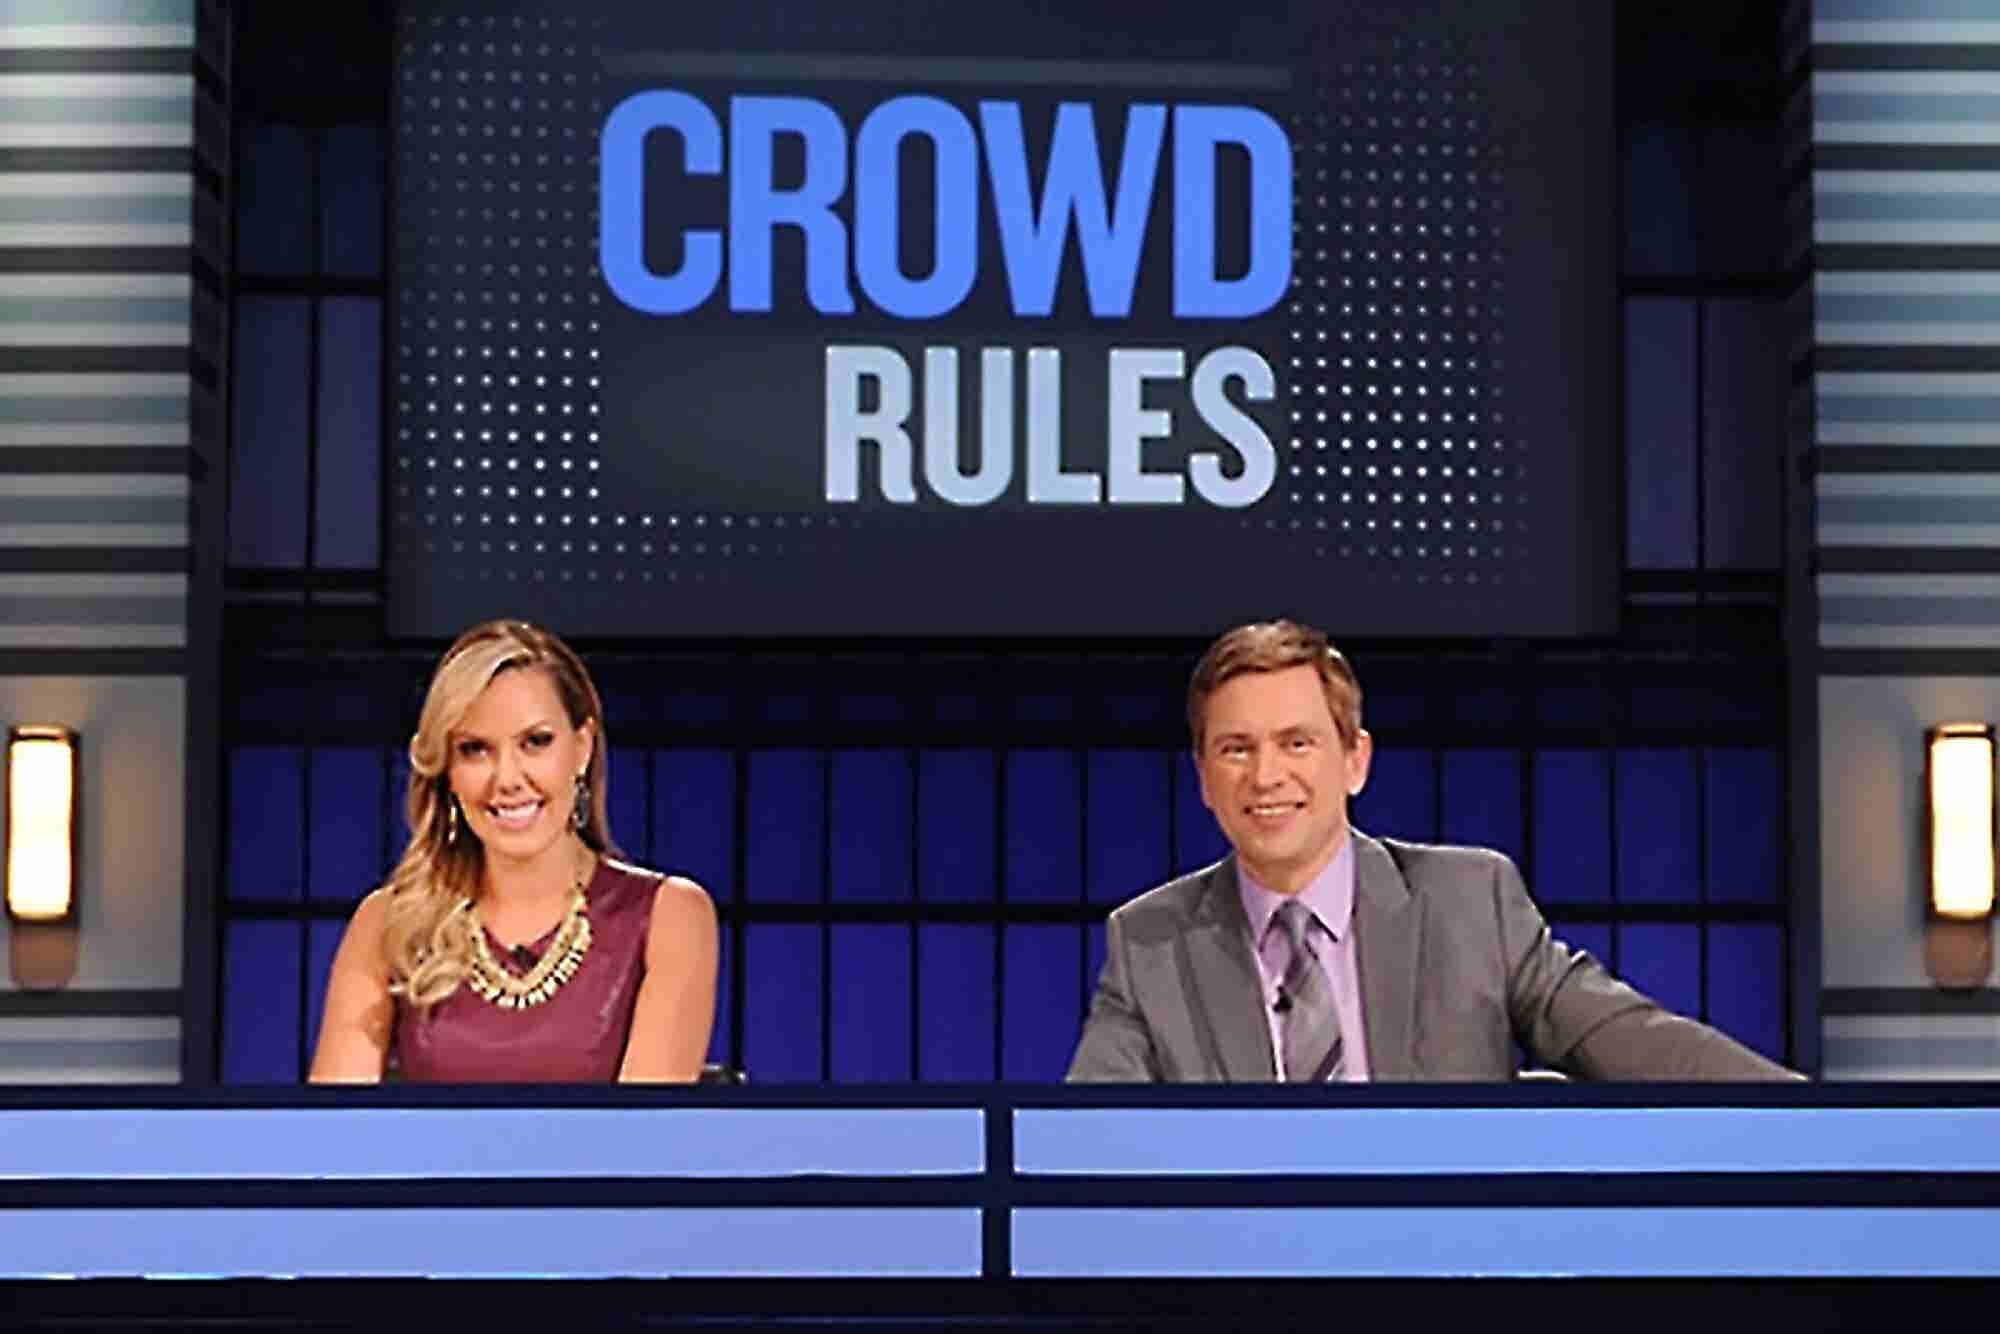 3 Lessons for Seasoned Entrepreneurs From CNBC's 'Crowd Rules'